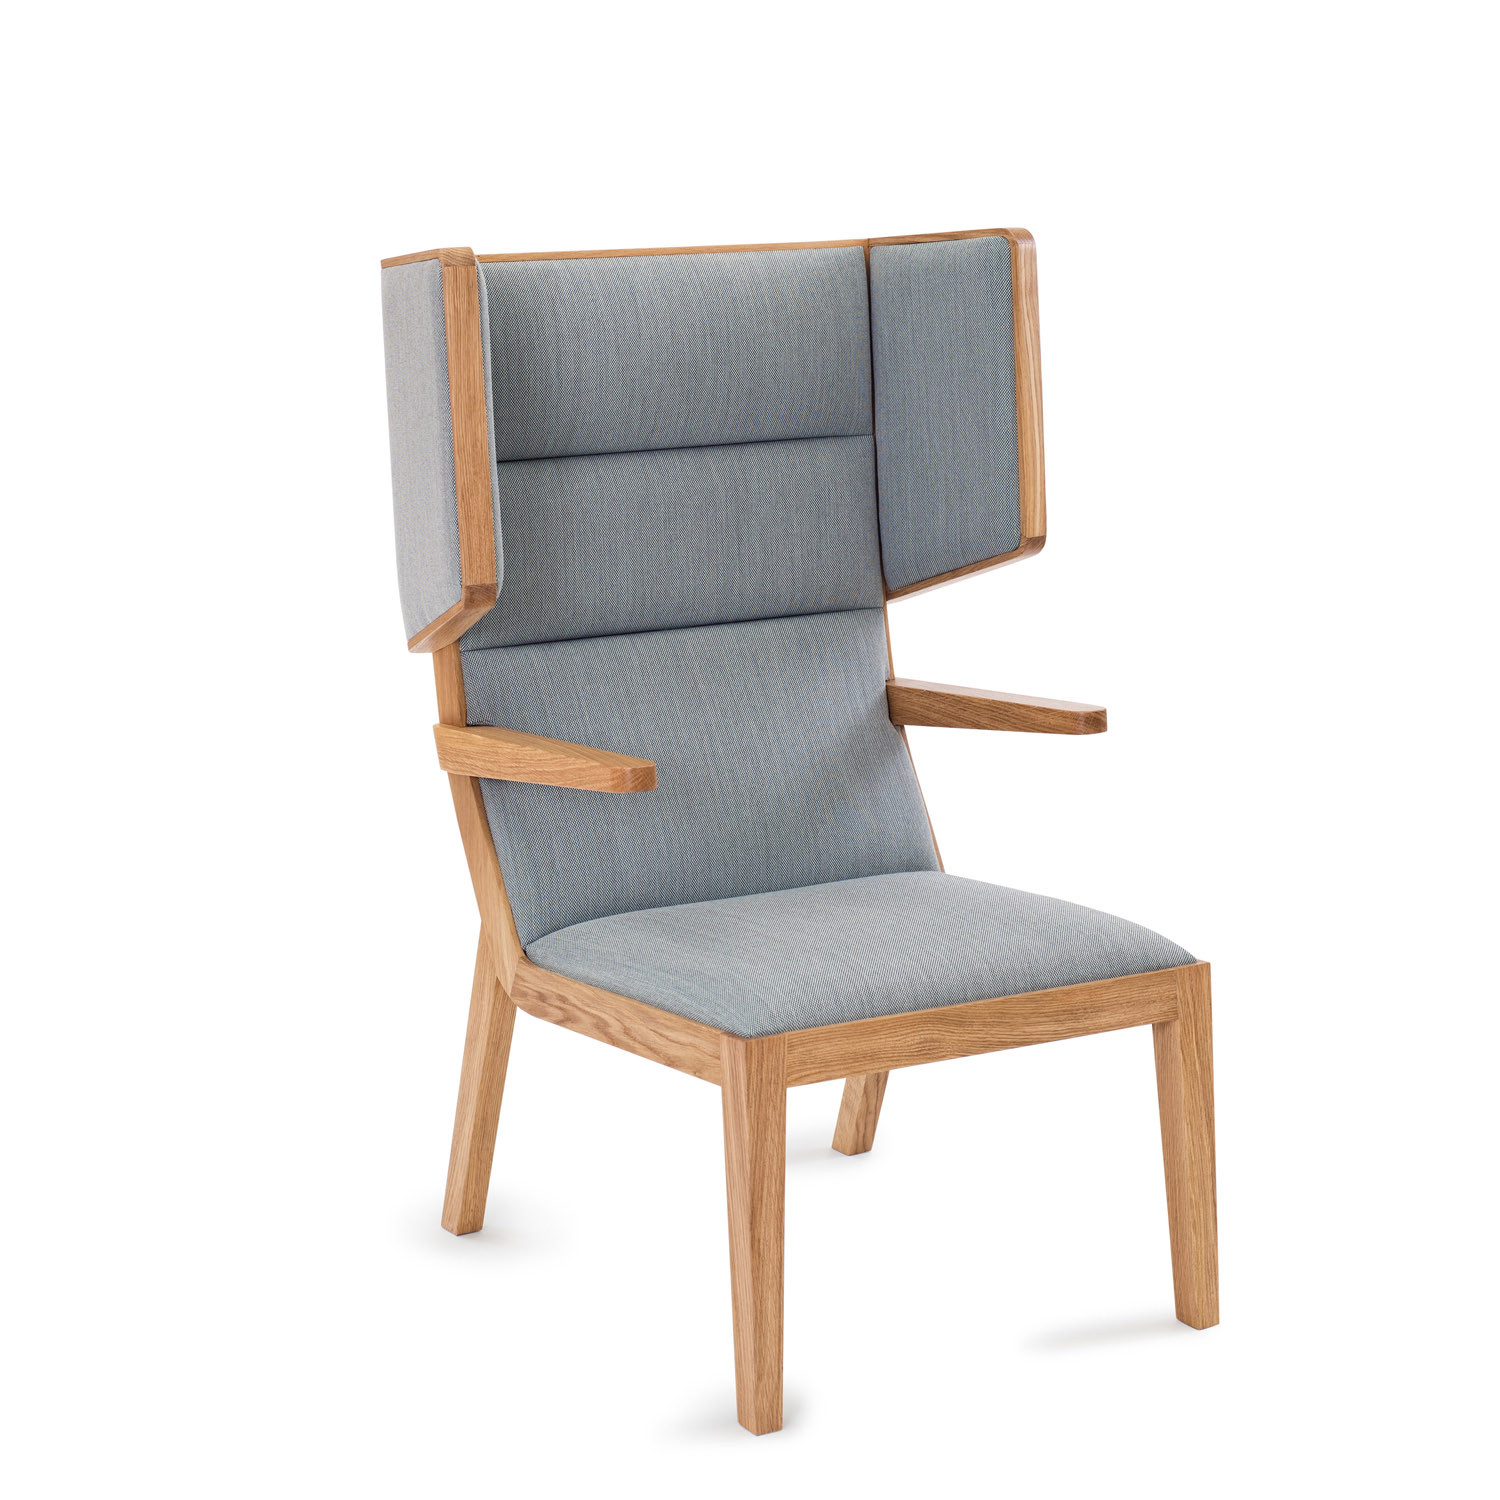 Jentle Lounge Chair 4-Legged SJT1A/A